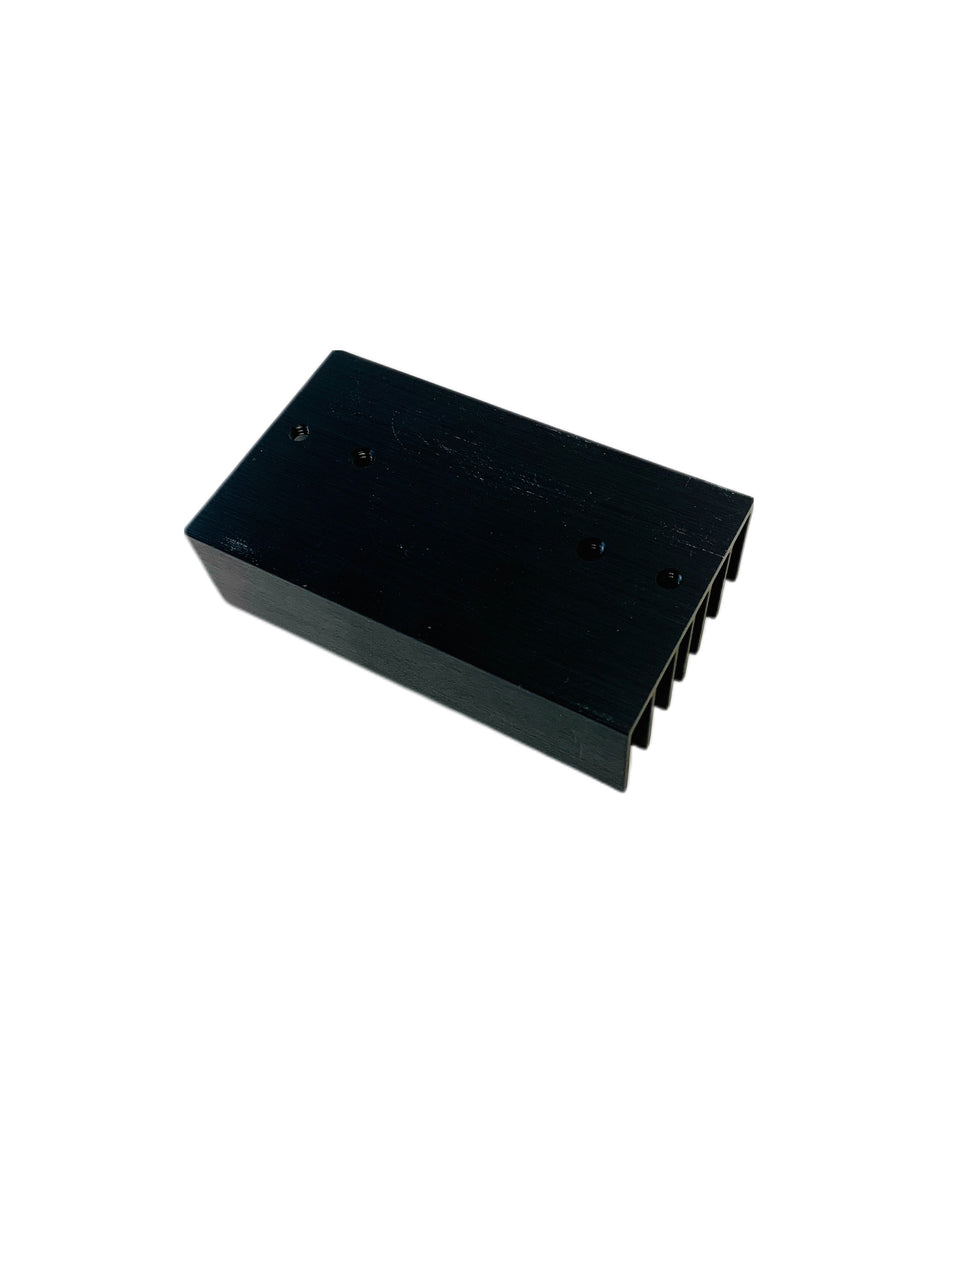 FEMA Electronics Black Anodized Aluminum Alloy Heat Sink 4050180